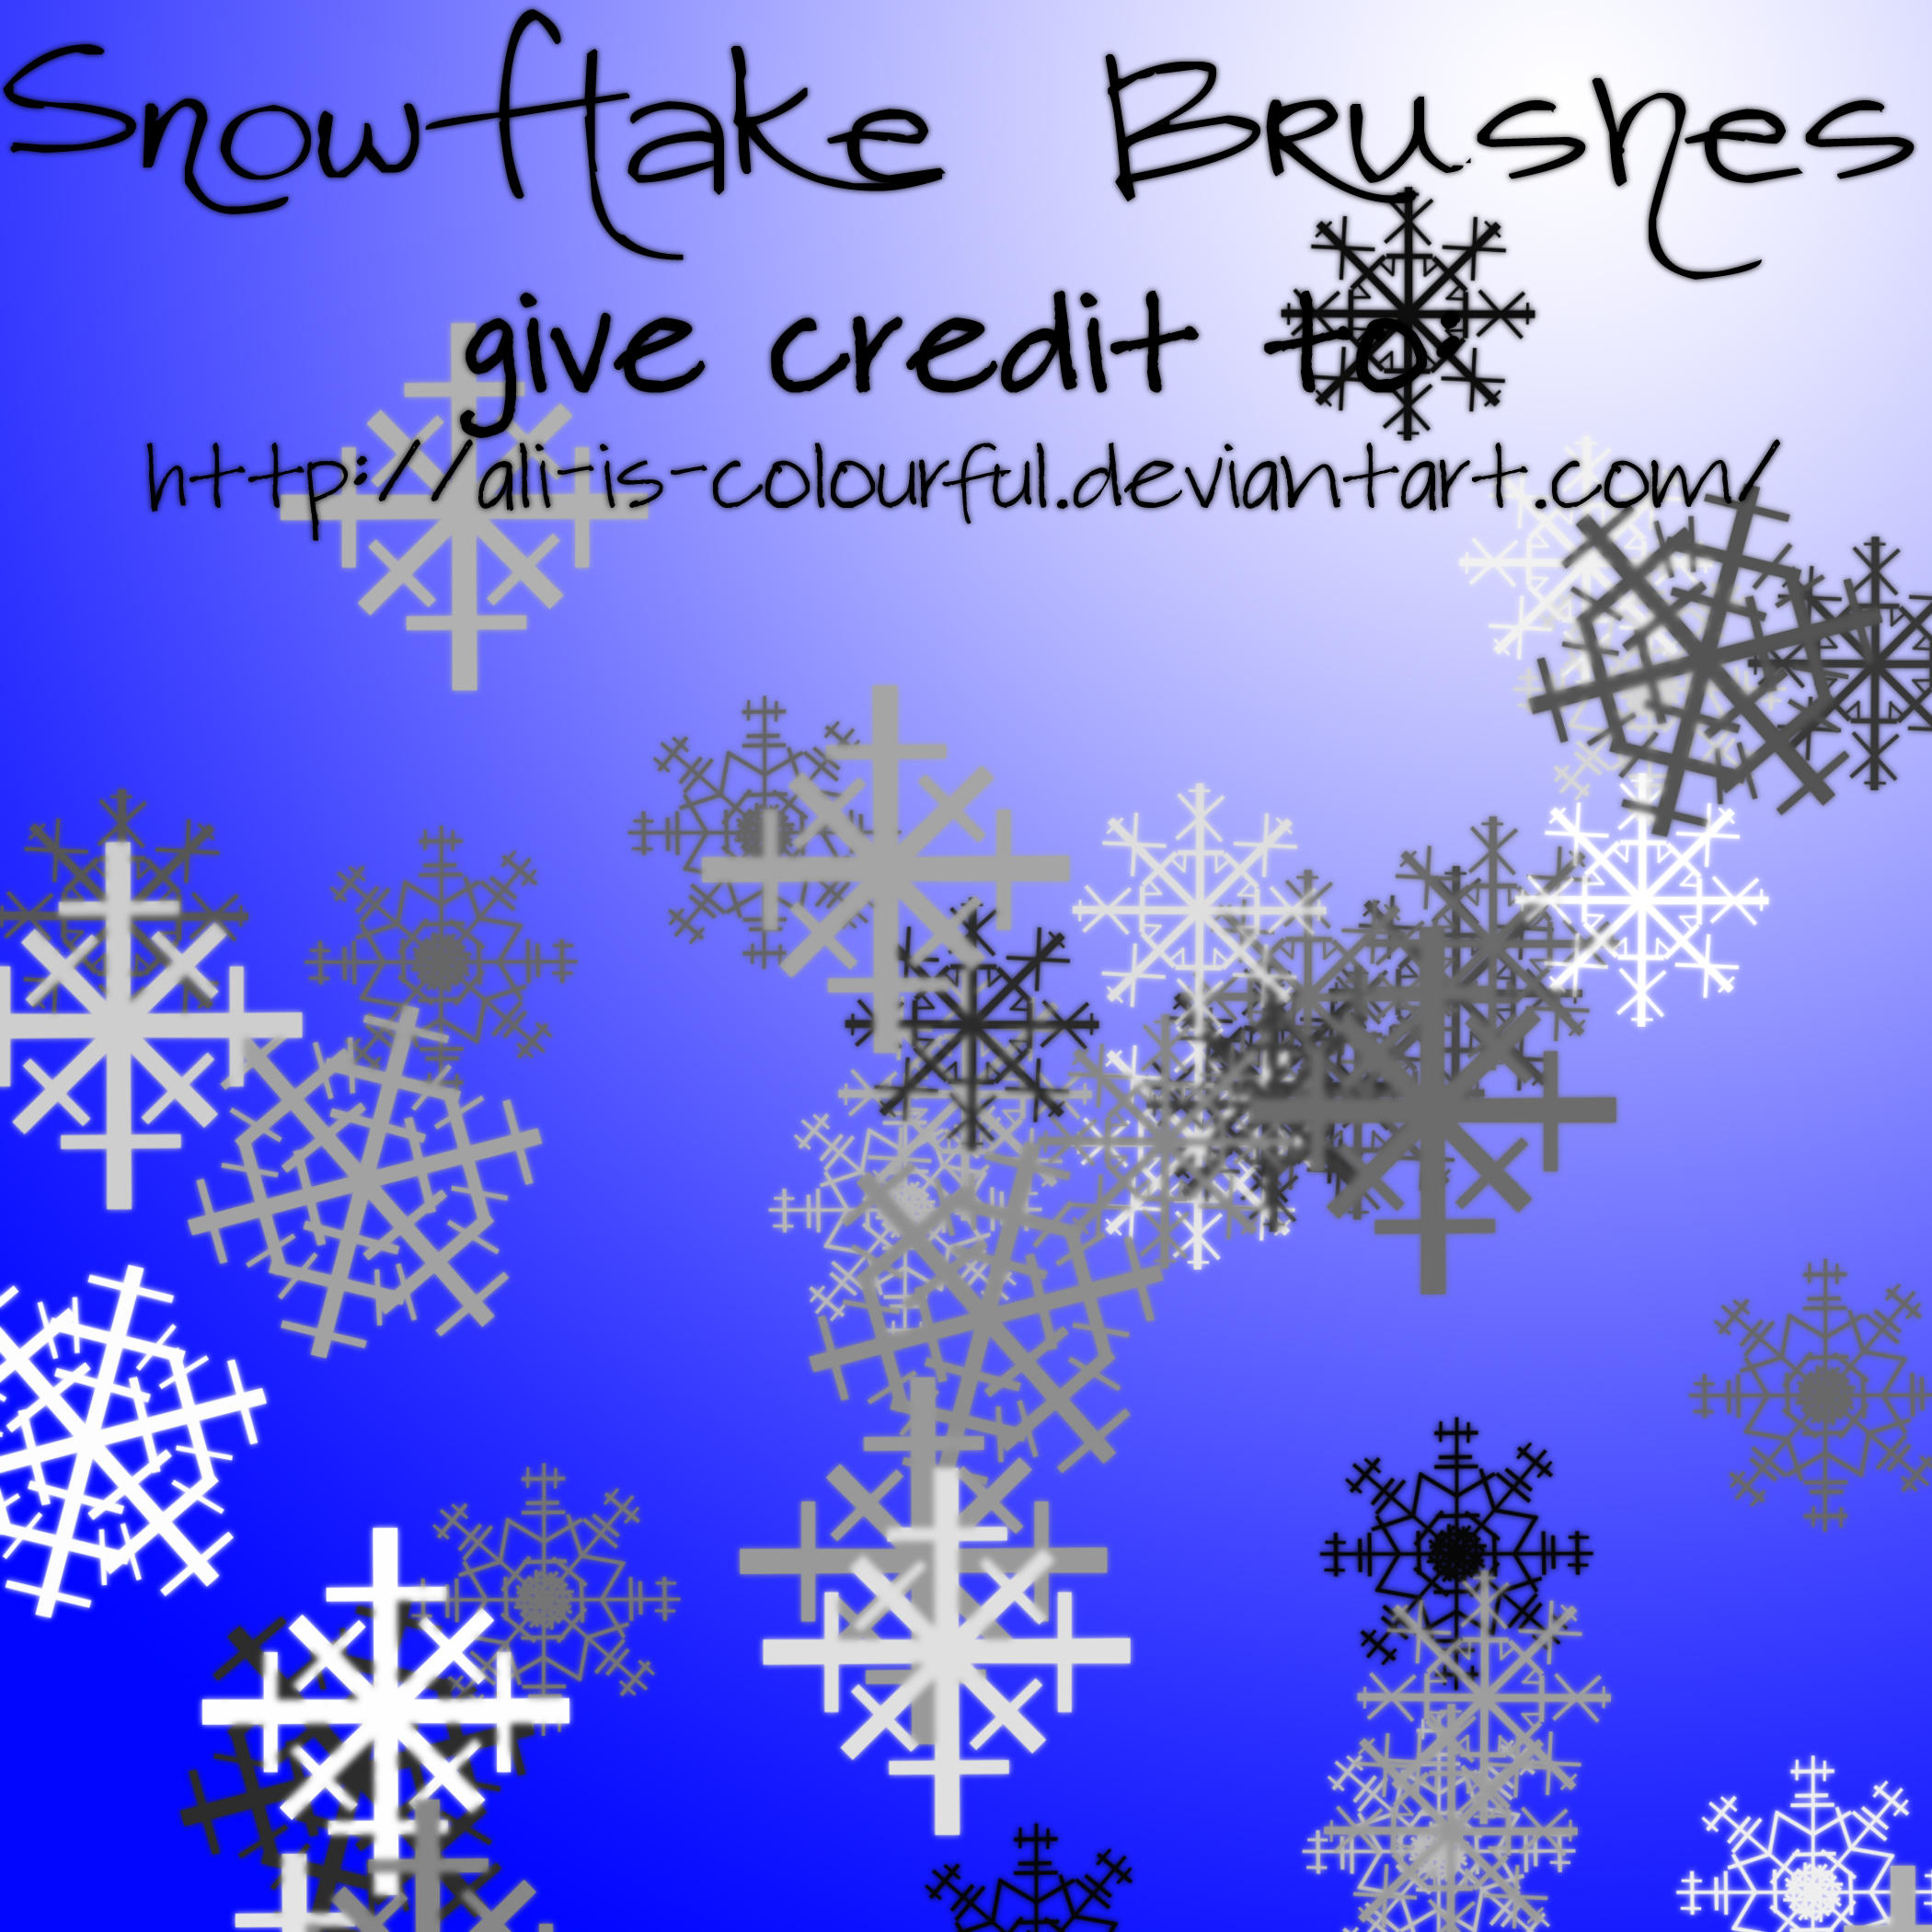 snowflake brushes by ali-is-colourful